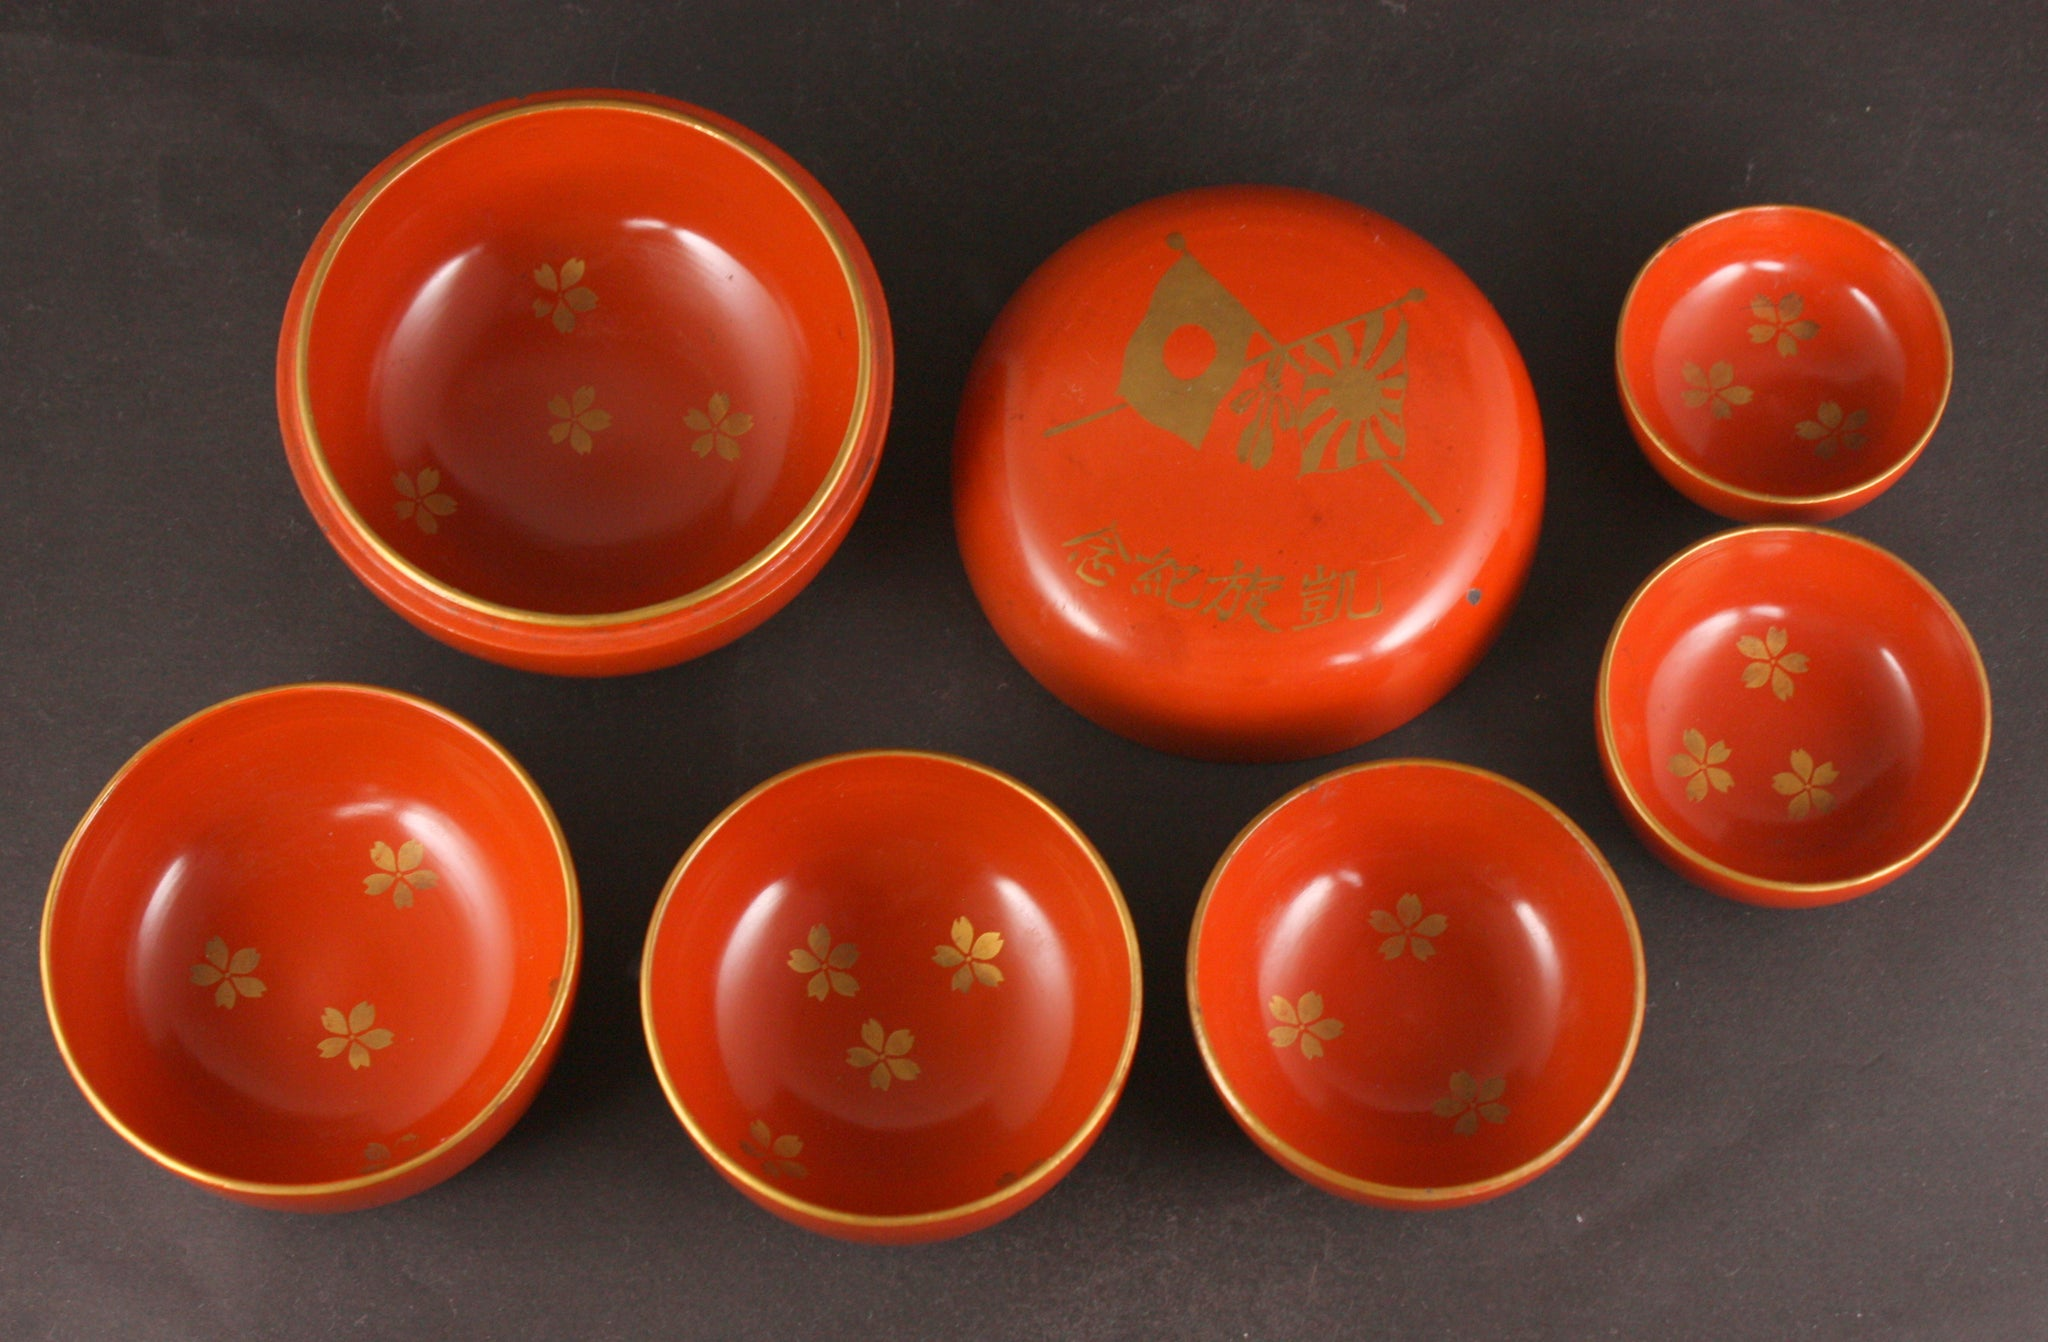 Russo Japanese War Military Matryoshka Doll Lacquer Sake Cups